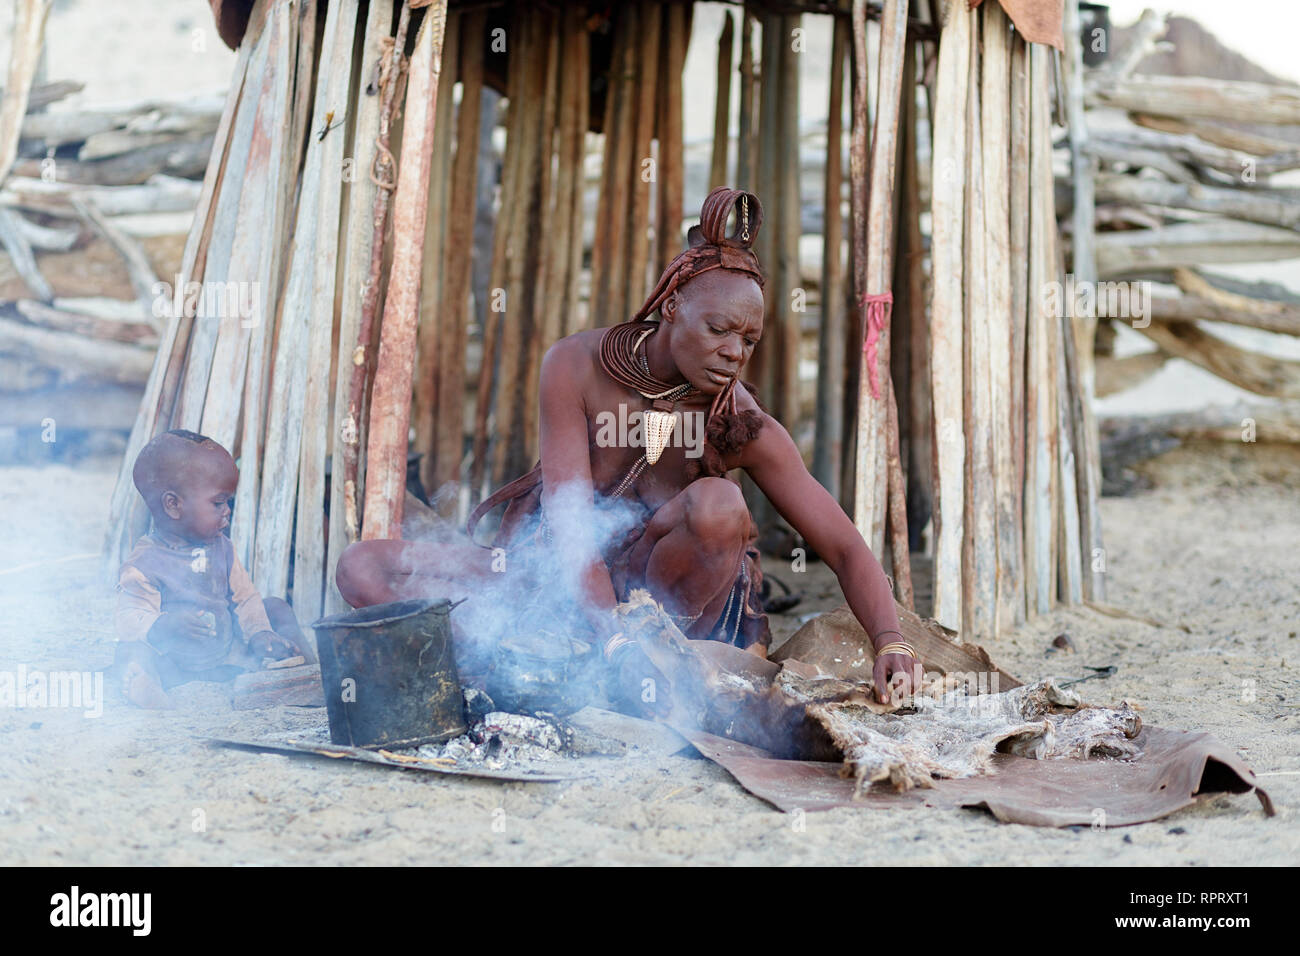 Himba woman and a baby sitting in front of the hut making dinner on fire in a traditional village in Northern Namibia - Stock Image